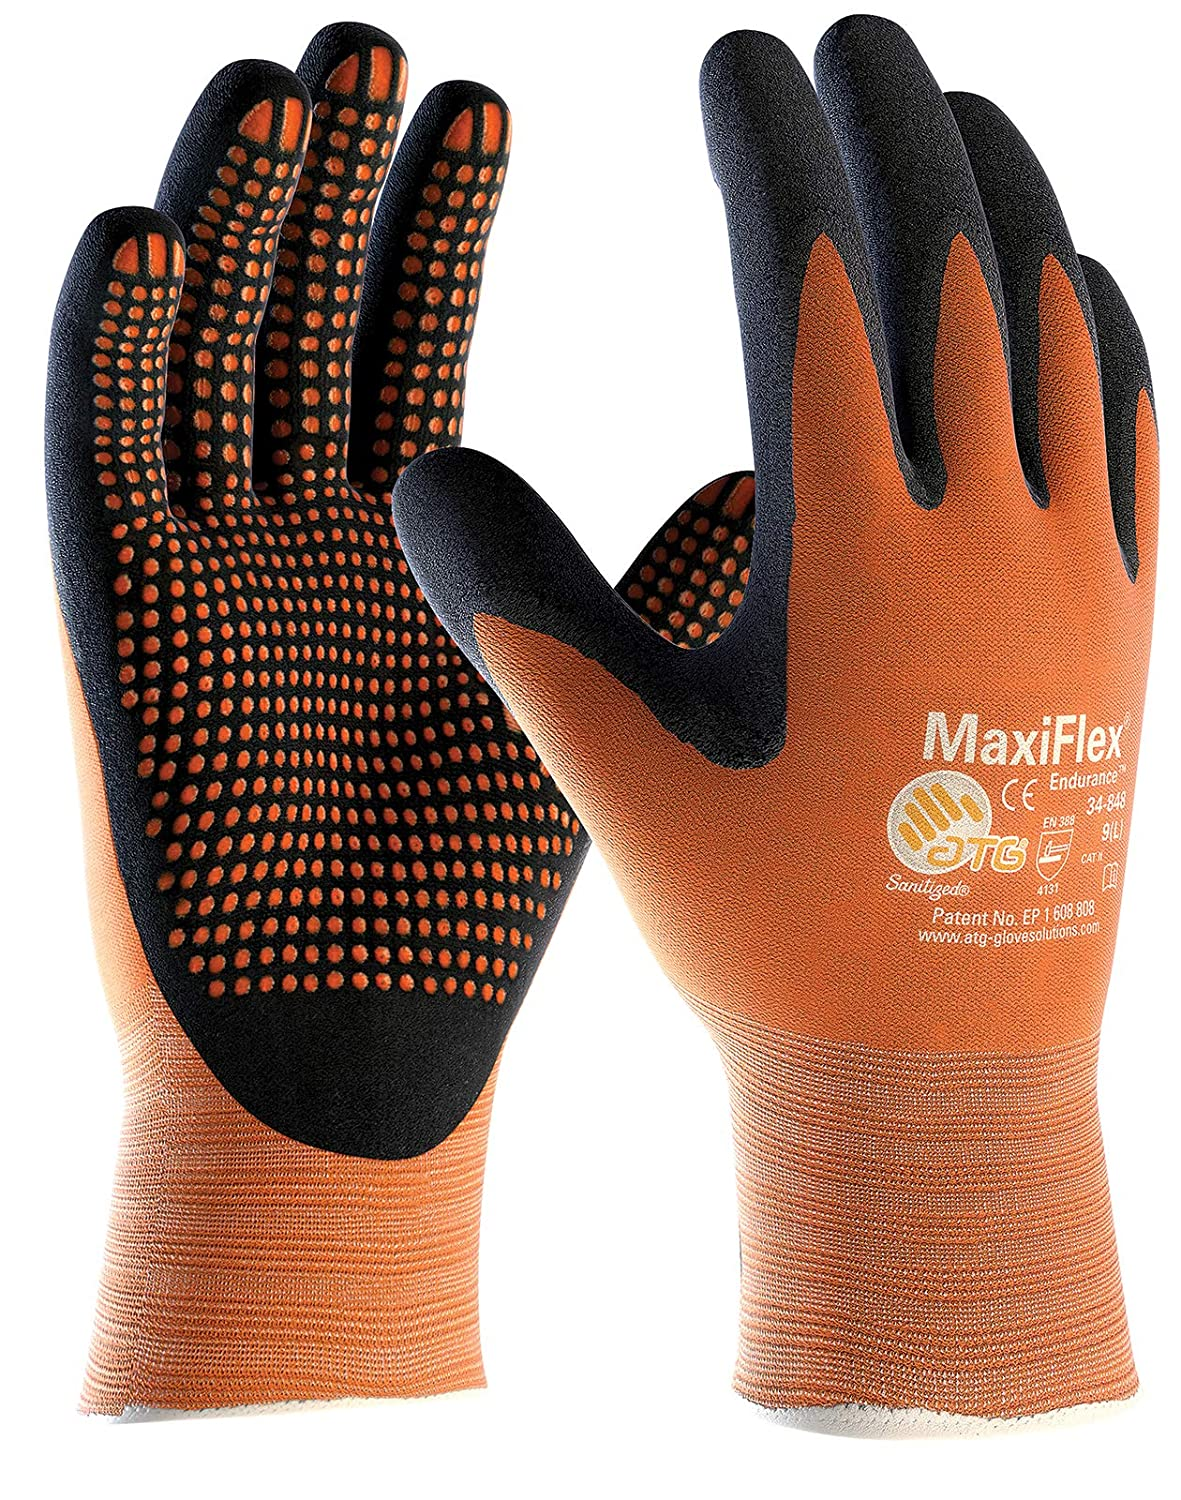 7//S MaxiFlex Ultimate 34-874 Nitrile Foam Palm Coated Work gloves